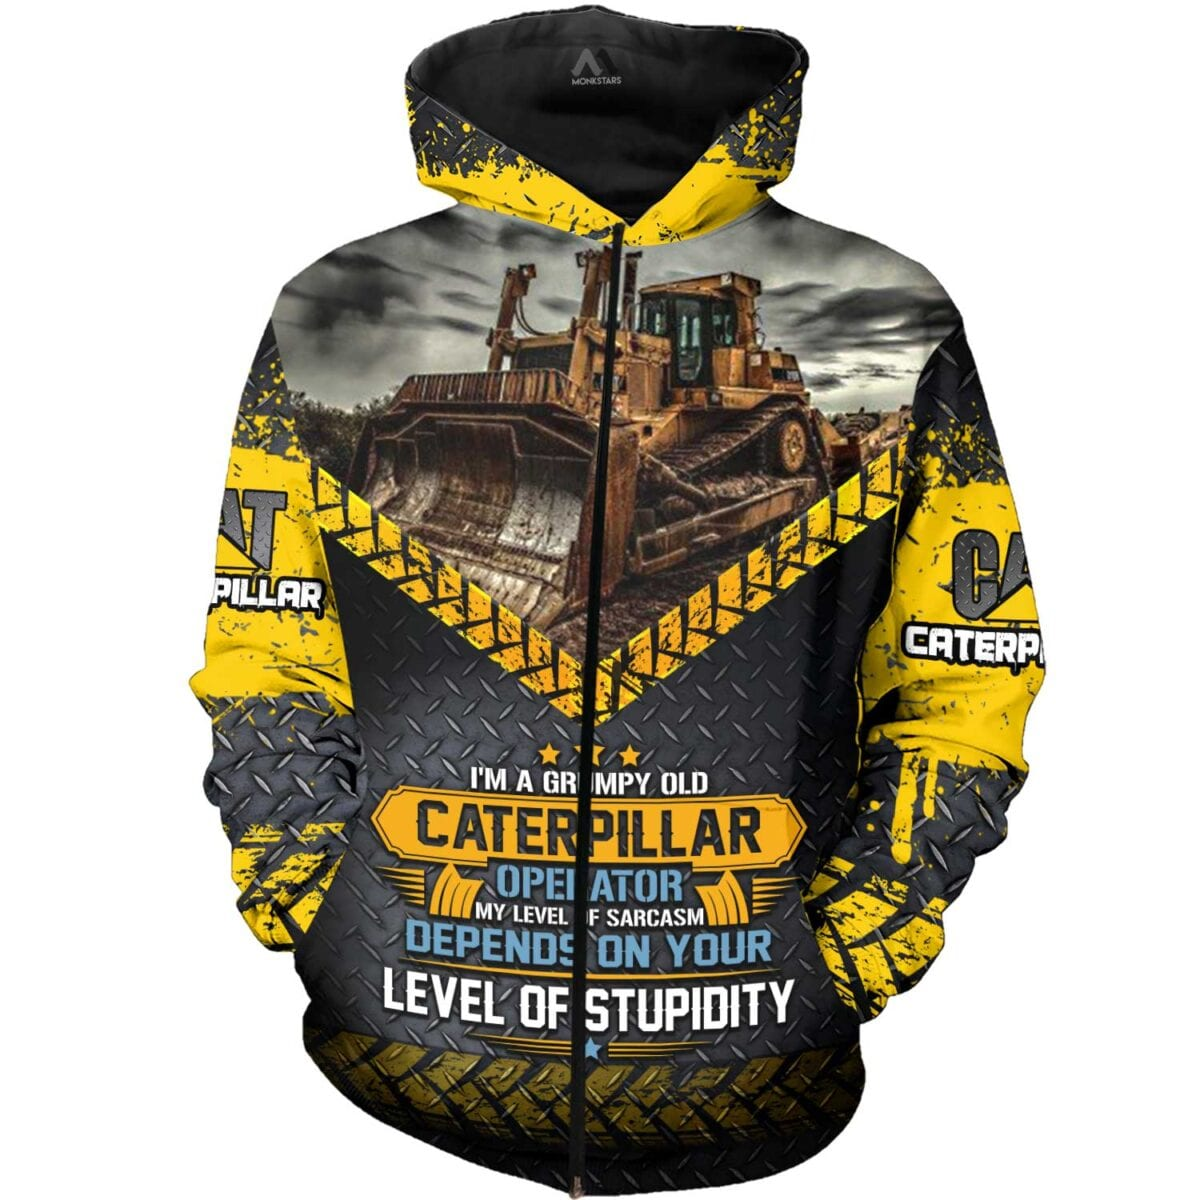 Heavy Equipment 3D All Over Printed Shirts for Men and Women 9